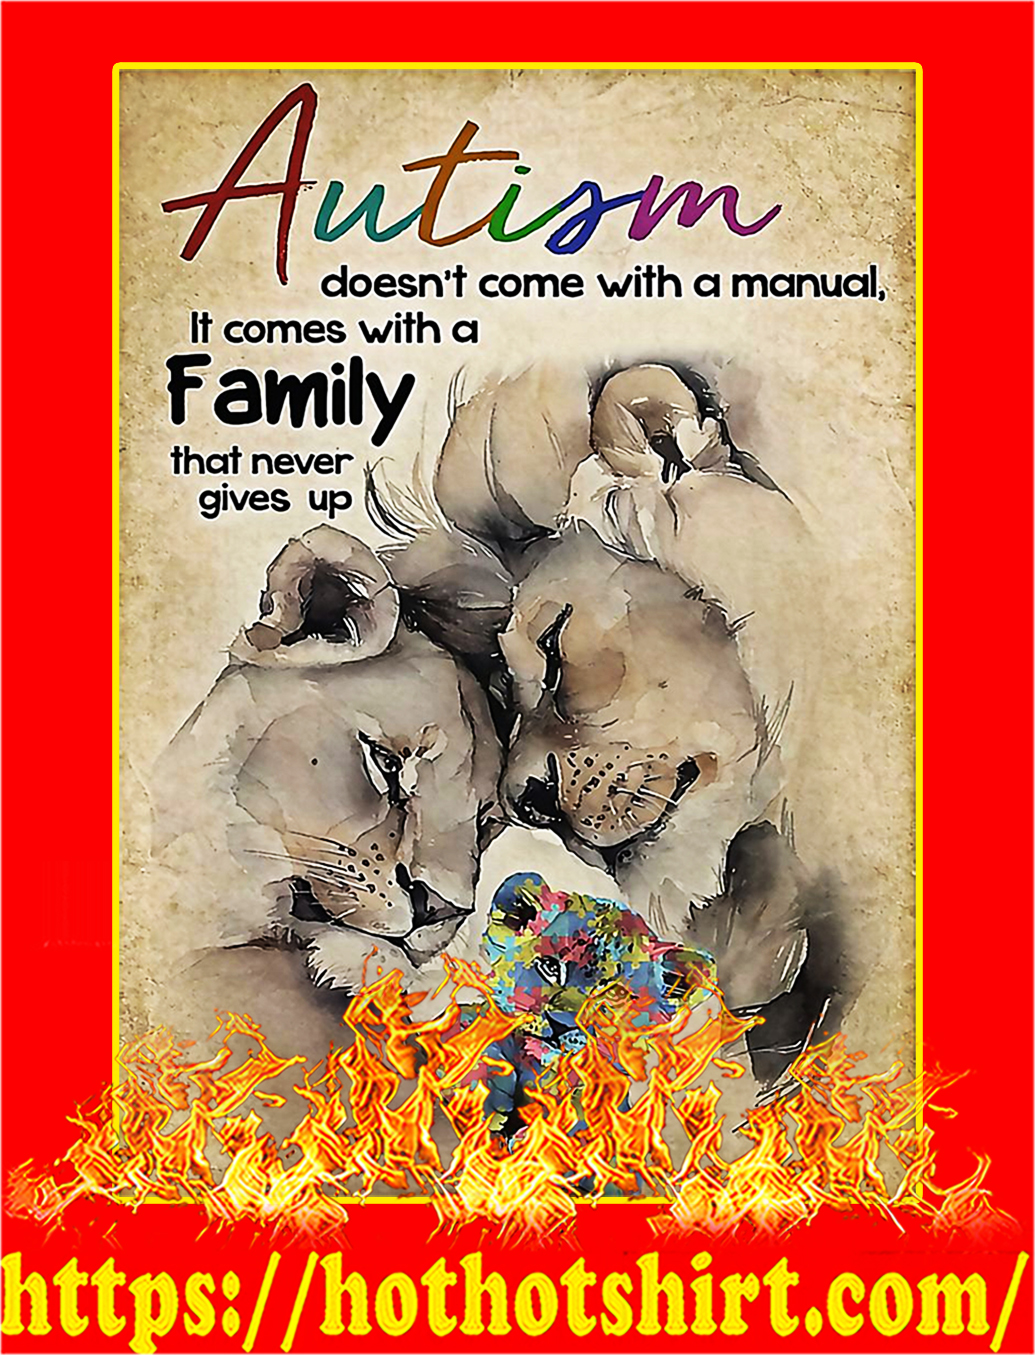 Lion Autism doen't come with a manual it comes with a family that never gives up poster - A1